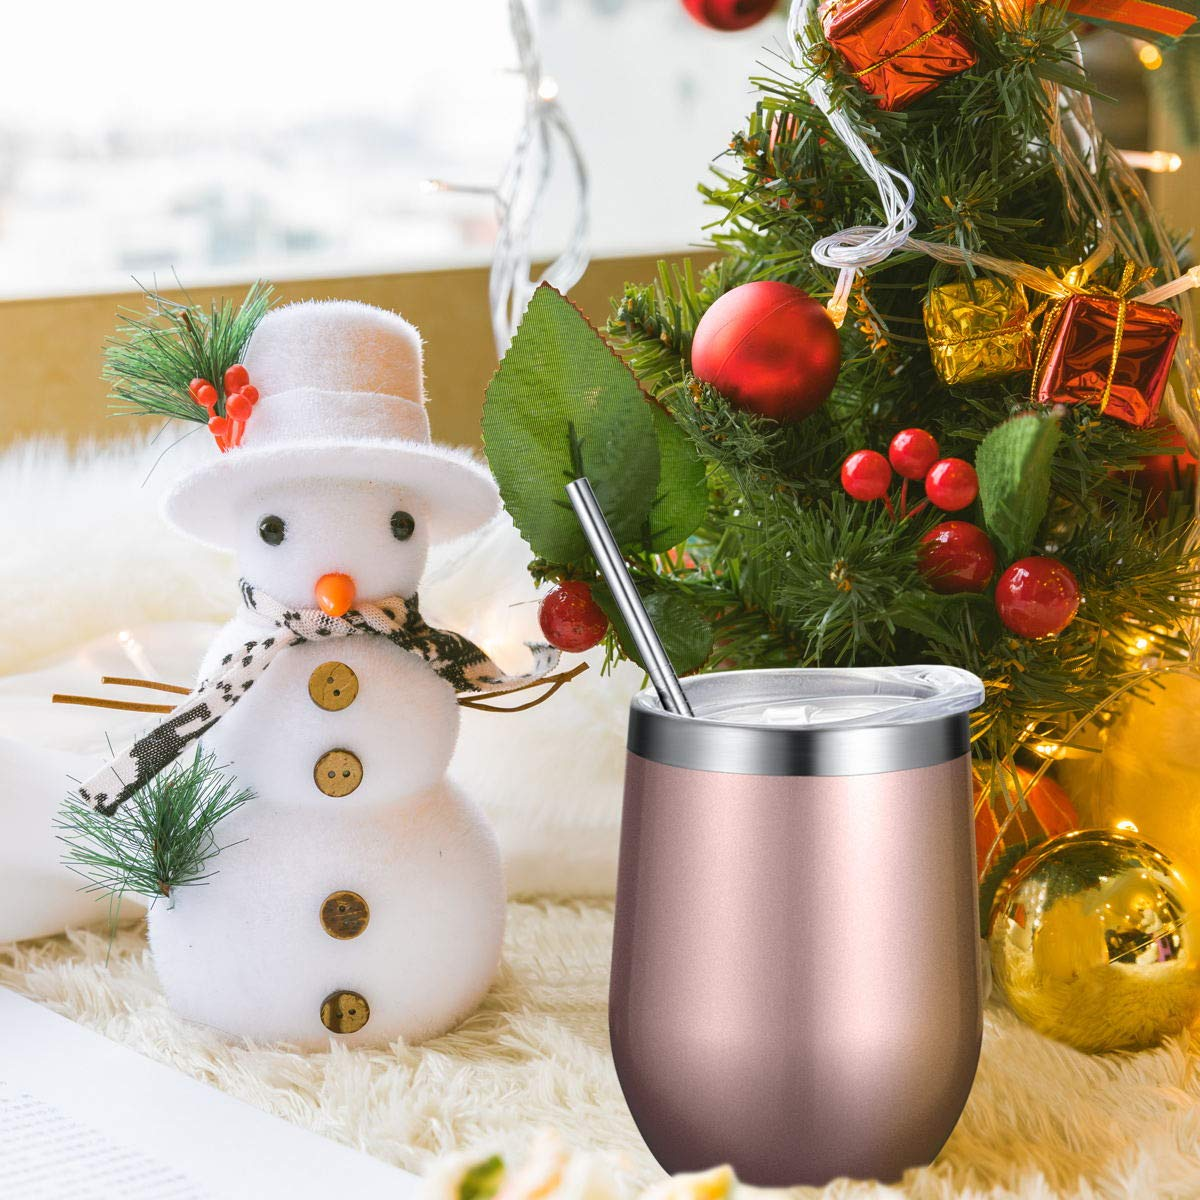 Fungun 6 pack 12 oz Stainless Steel Stemless Wine Glass Tumbler Double Wall Vacuum Insulated Wine Tumbler with Slip Lids Set of 6 for Coffee, Wine, Cocktails, Ice Cream Including 6 Straws(Rose Gold) by Fungun (Image #6)